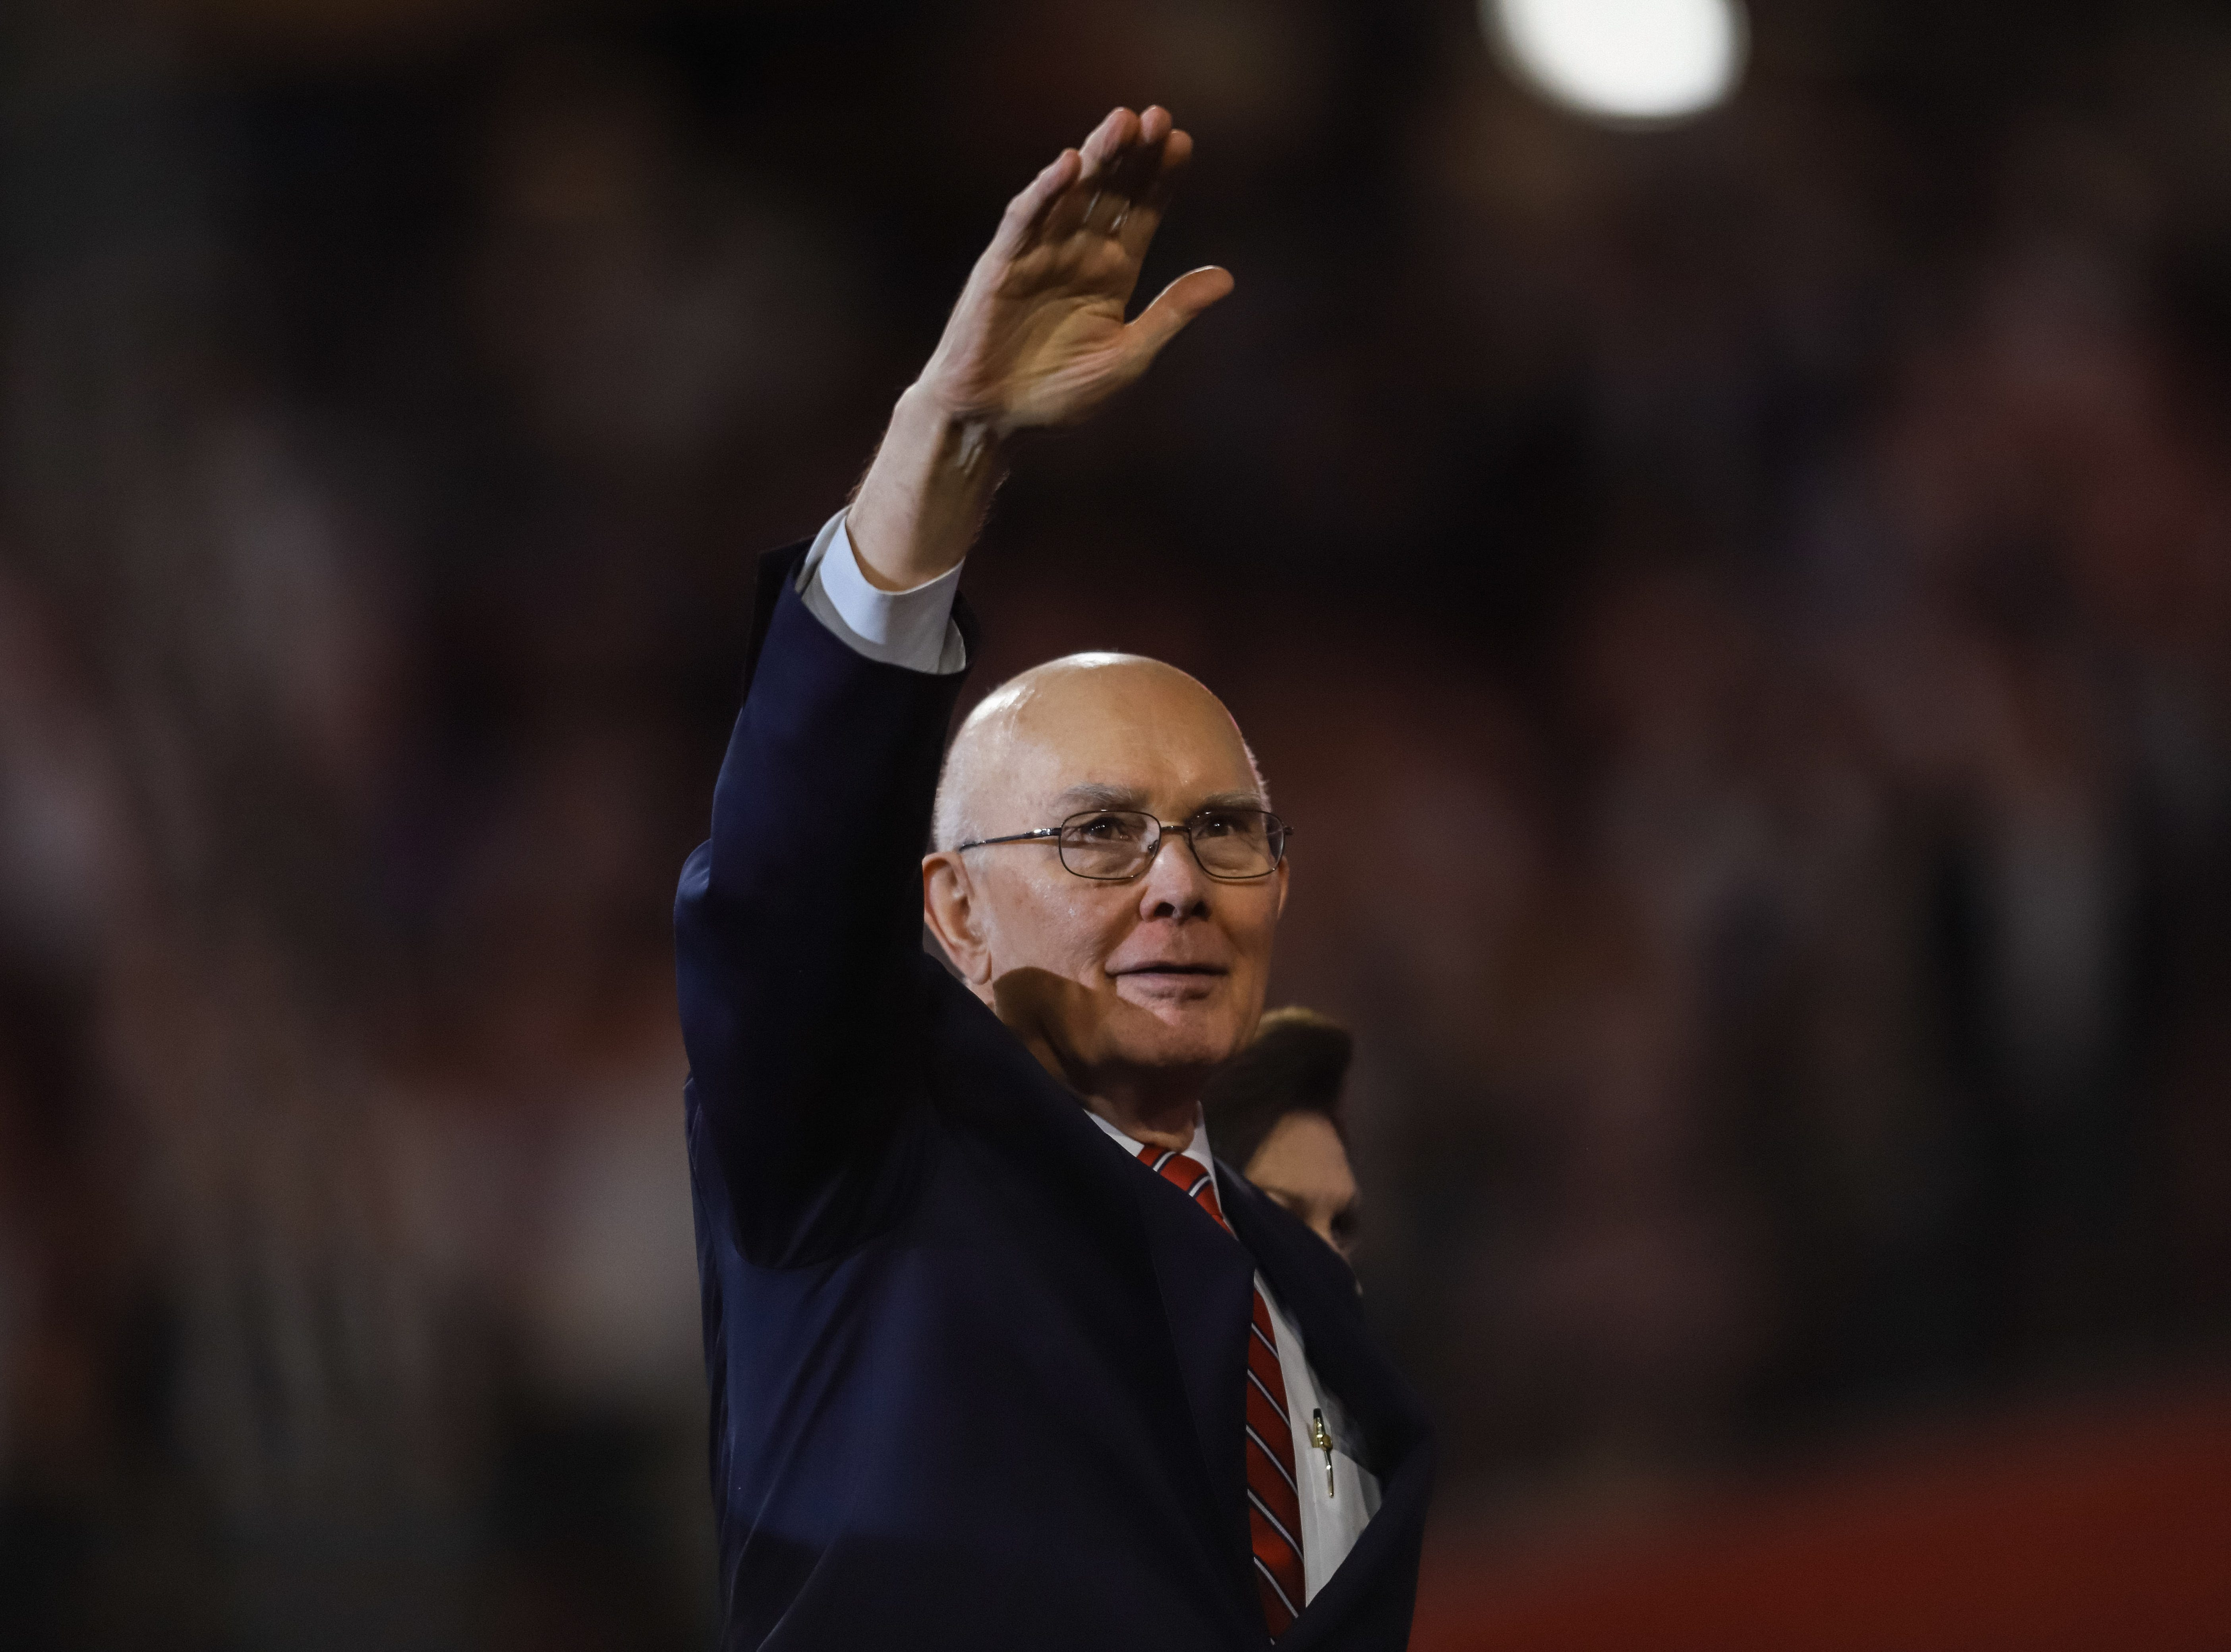 President Dallin H. Oaks, of the First Presidency of the Church of Jesus Christ of Latter-day Saints waves to the crowd after President Russell M. Nelson leaves, at State Farm Stadium in Glendale, Arizona on Sunday, Feb. 10, 2019.